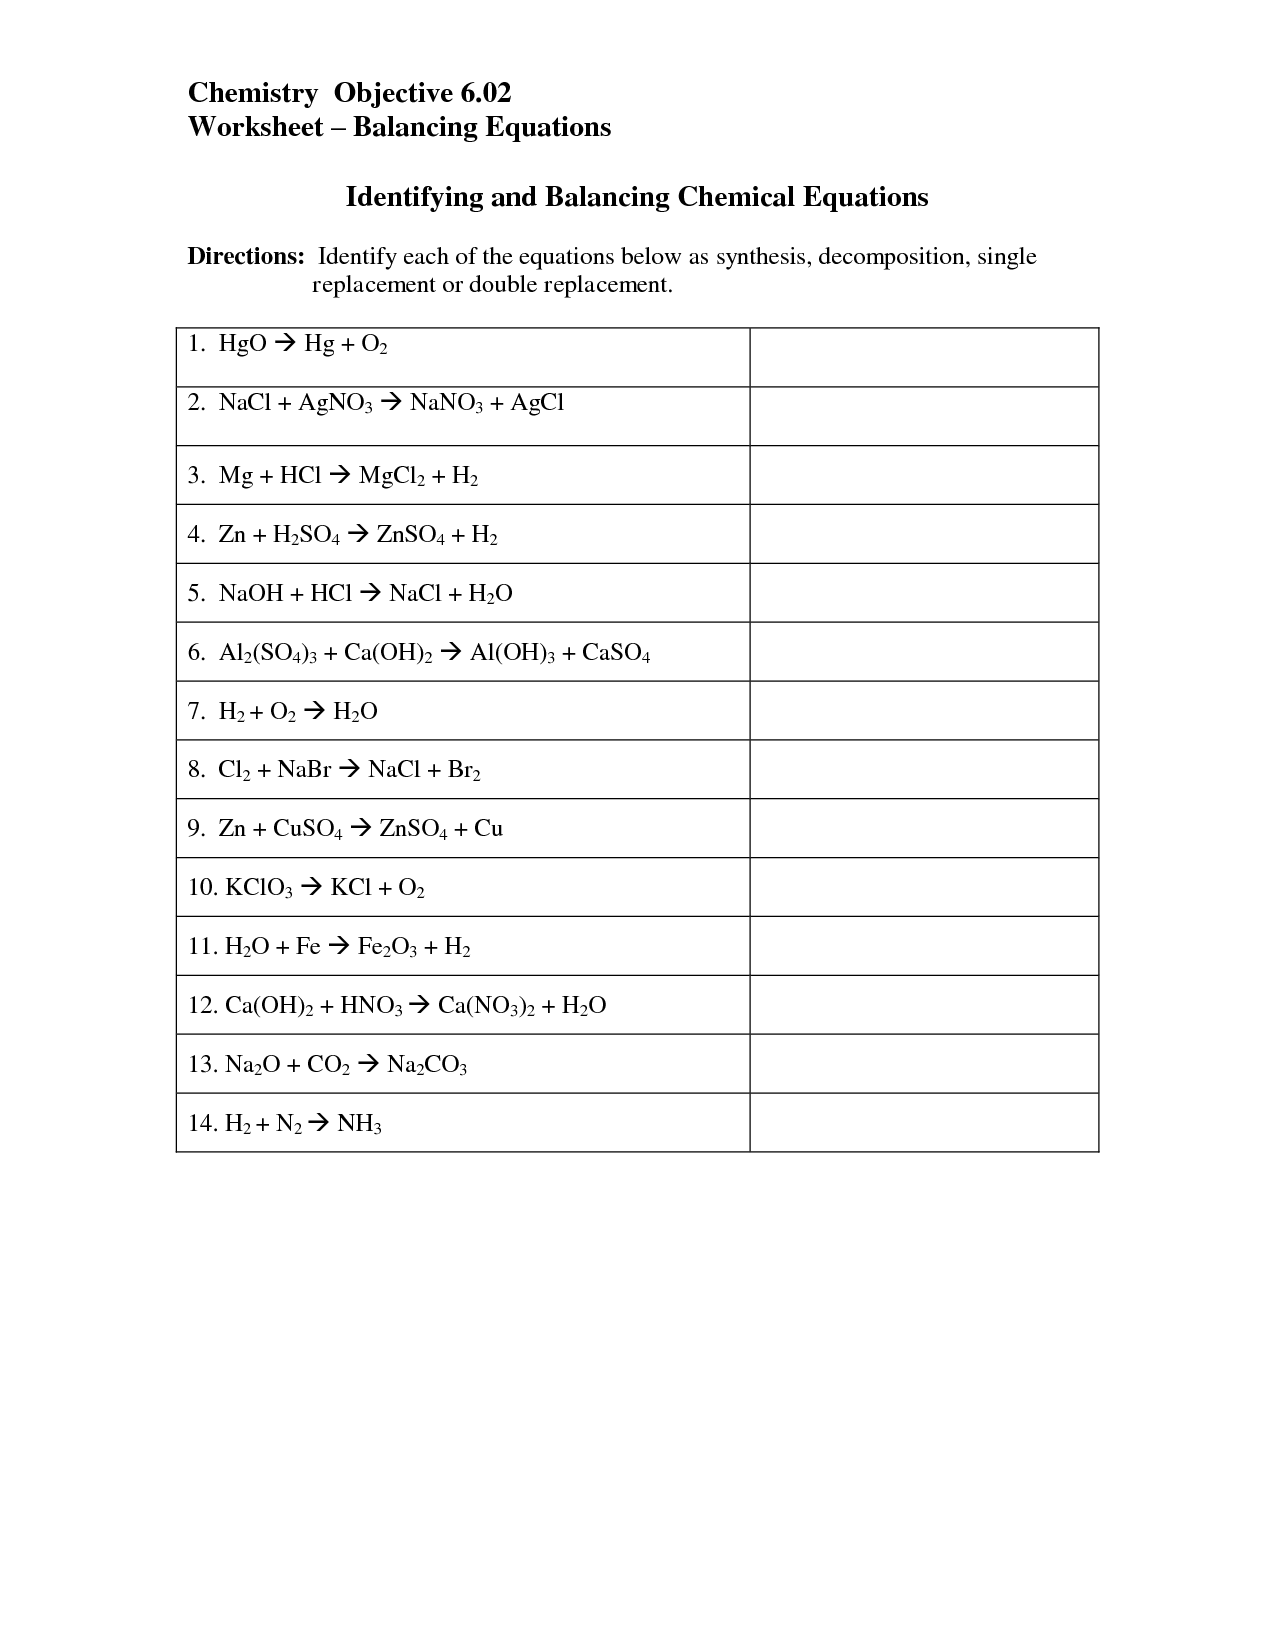 Balancing Chemical Equations Worksheet Nano3